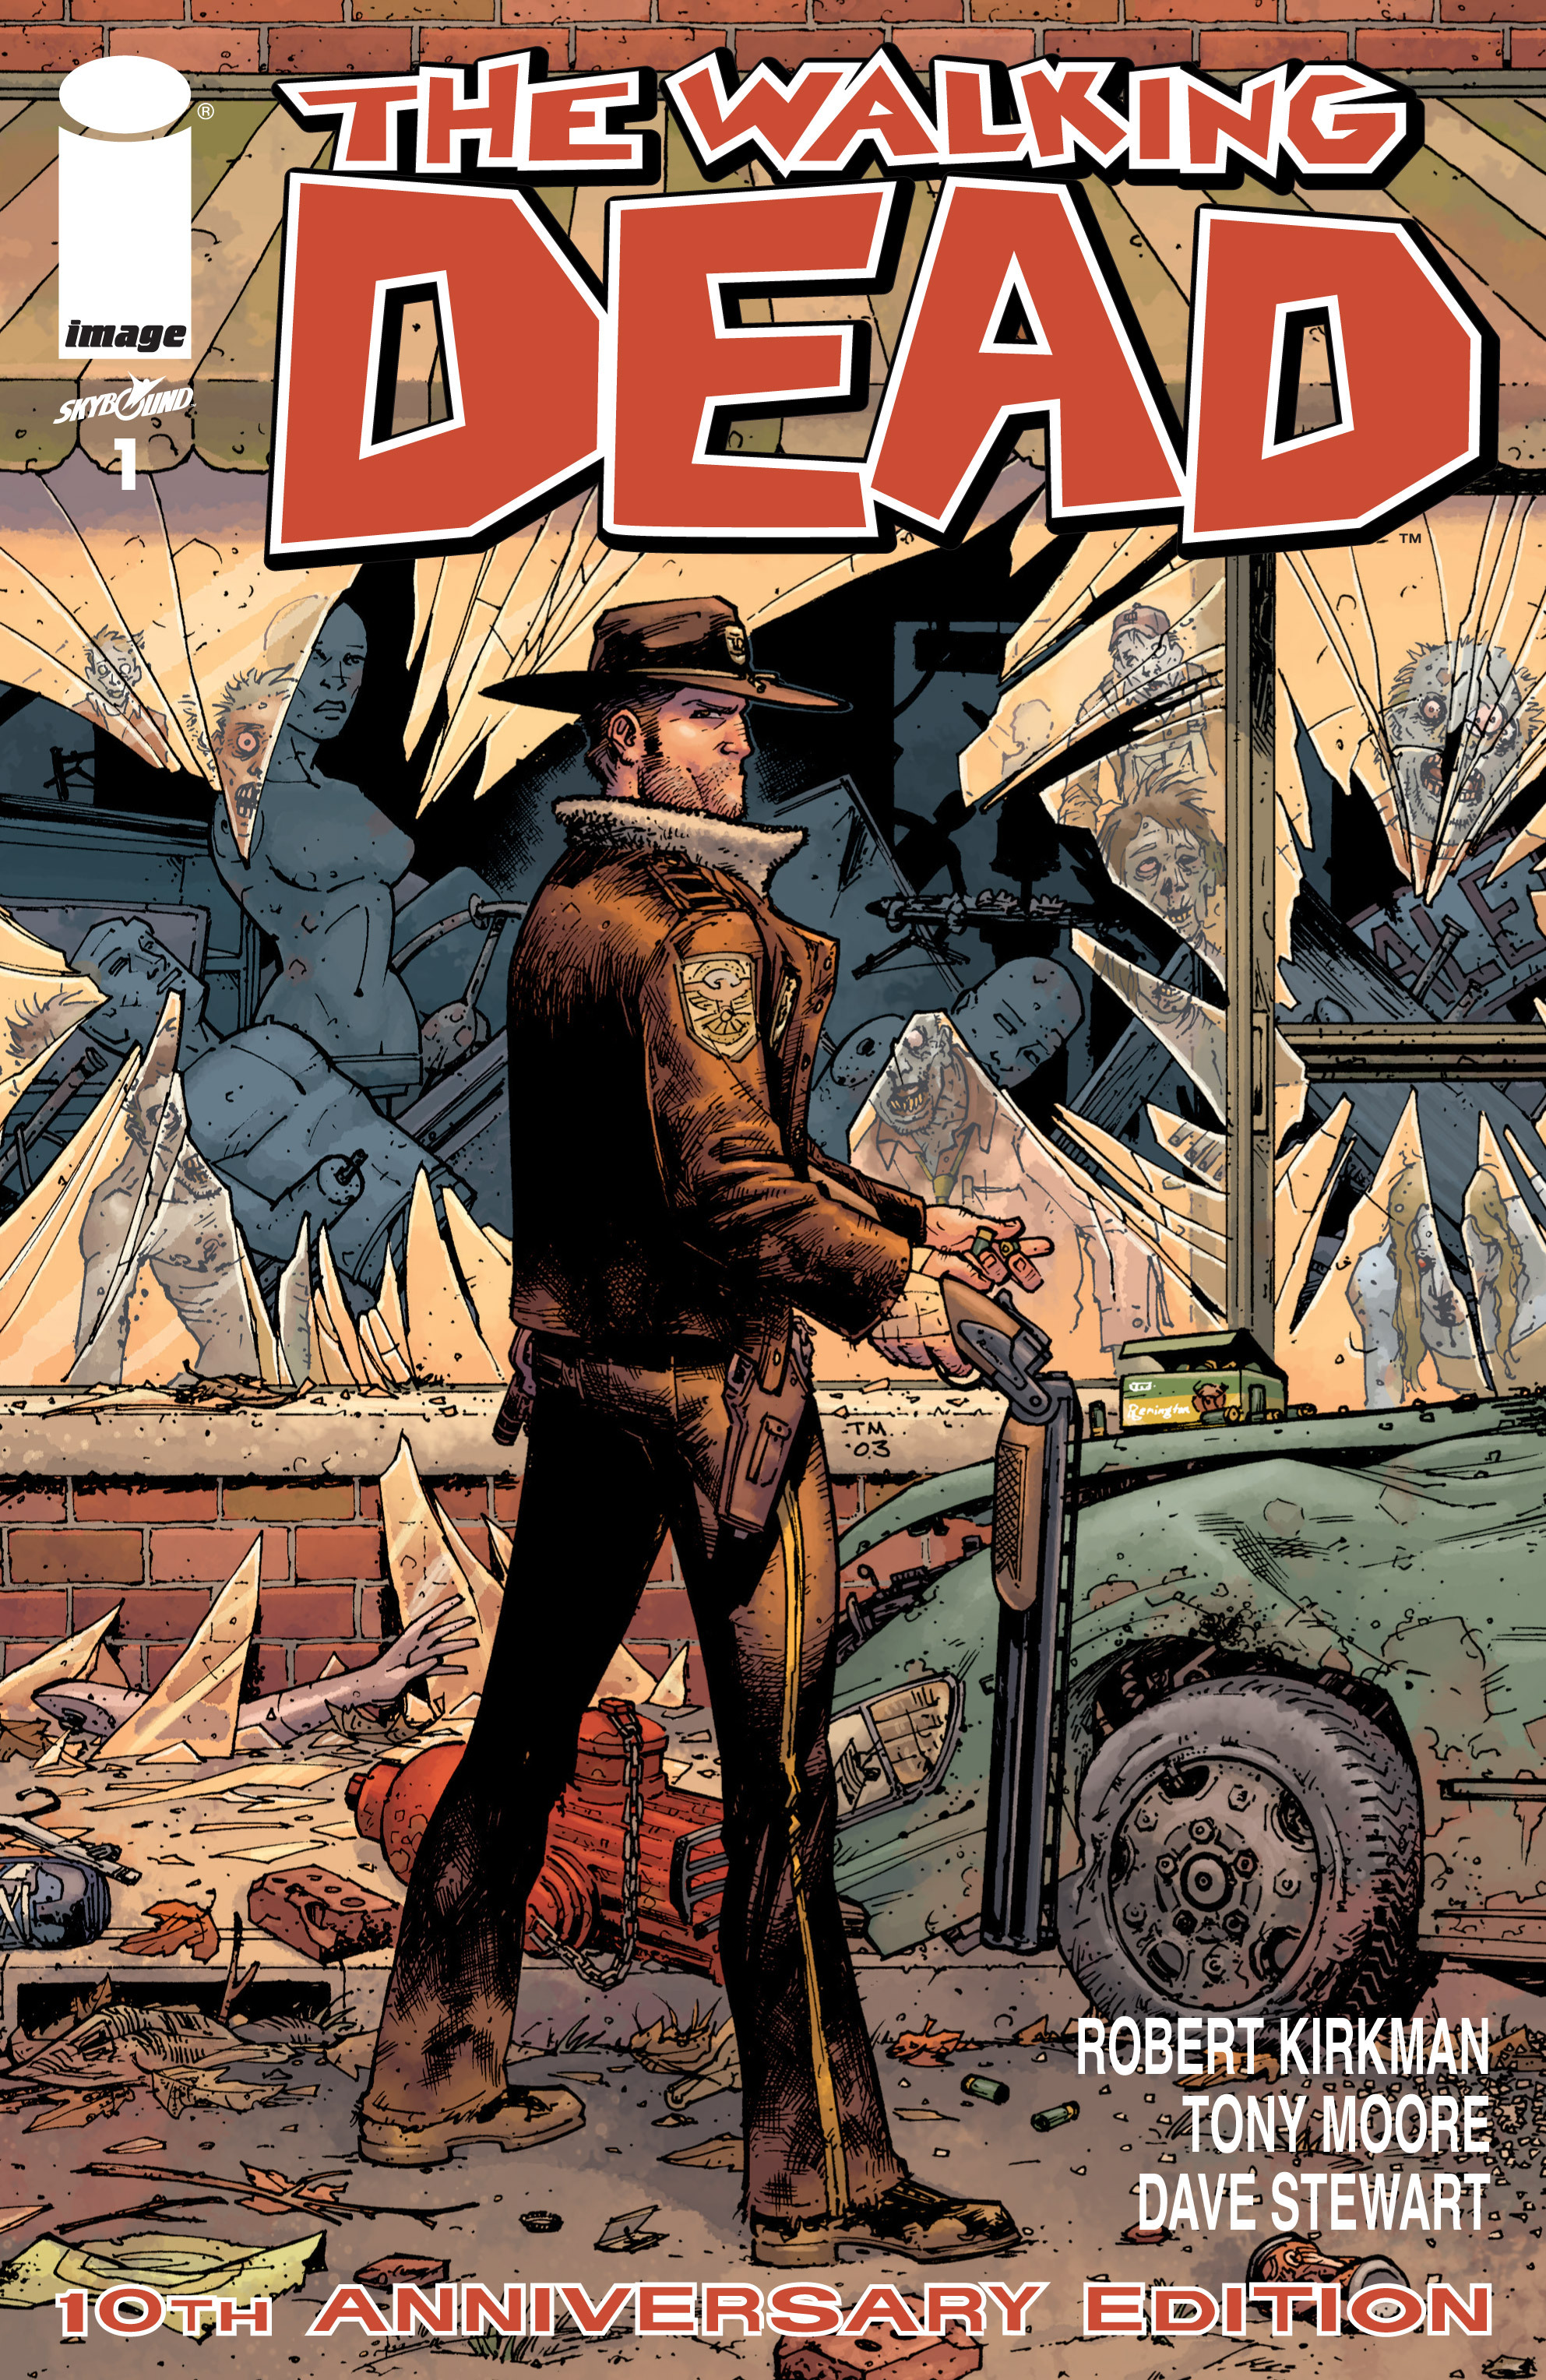 The Walking Dead _Special_-_1_-_10th_Anniversary_Edition Page 1